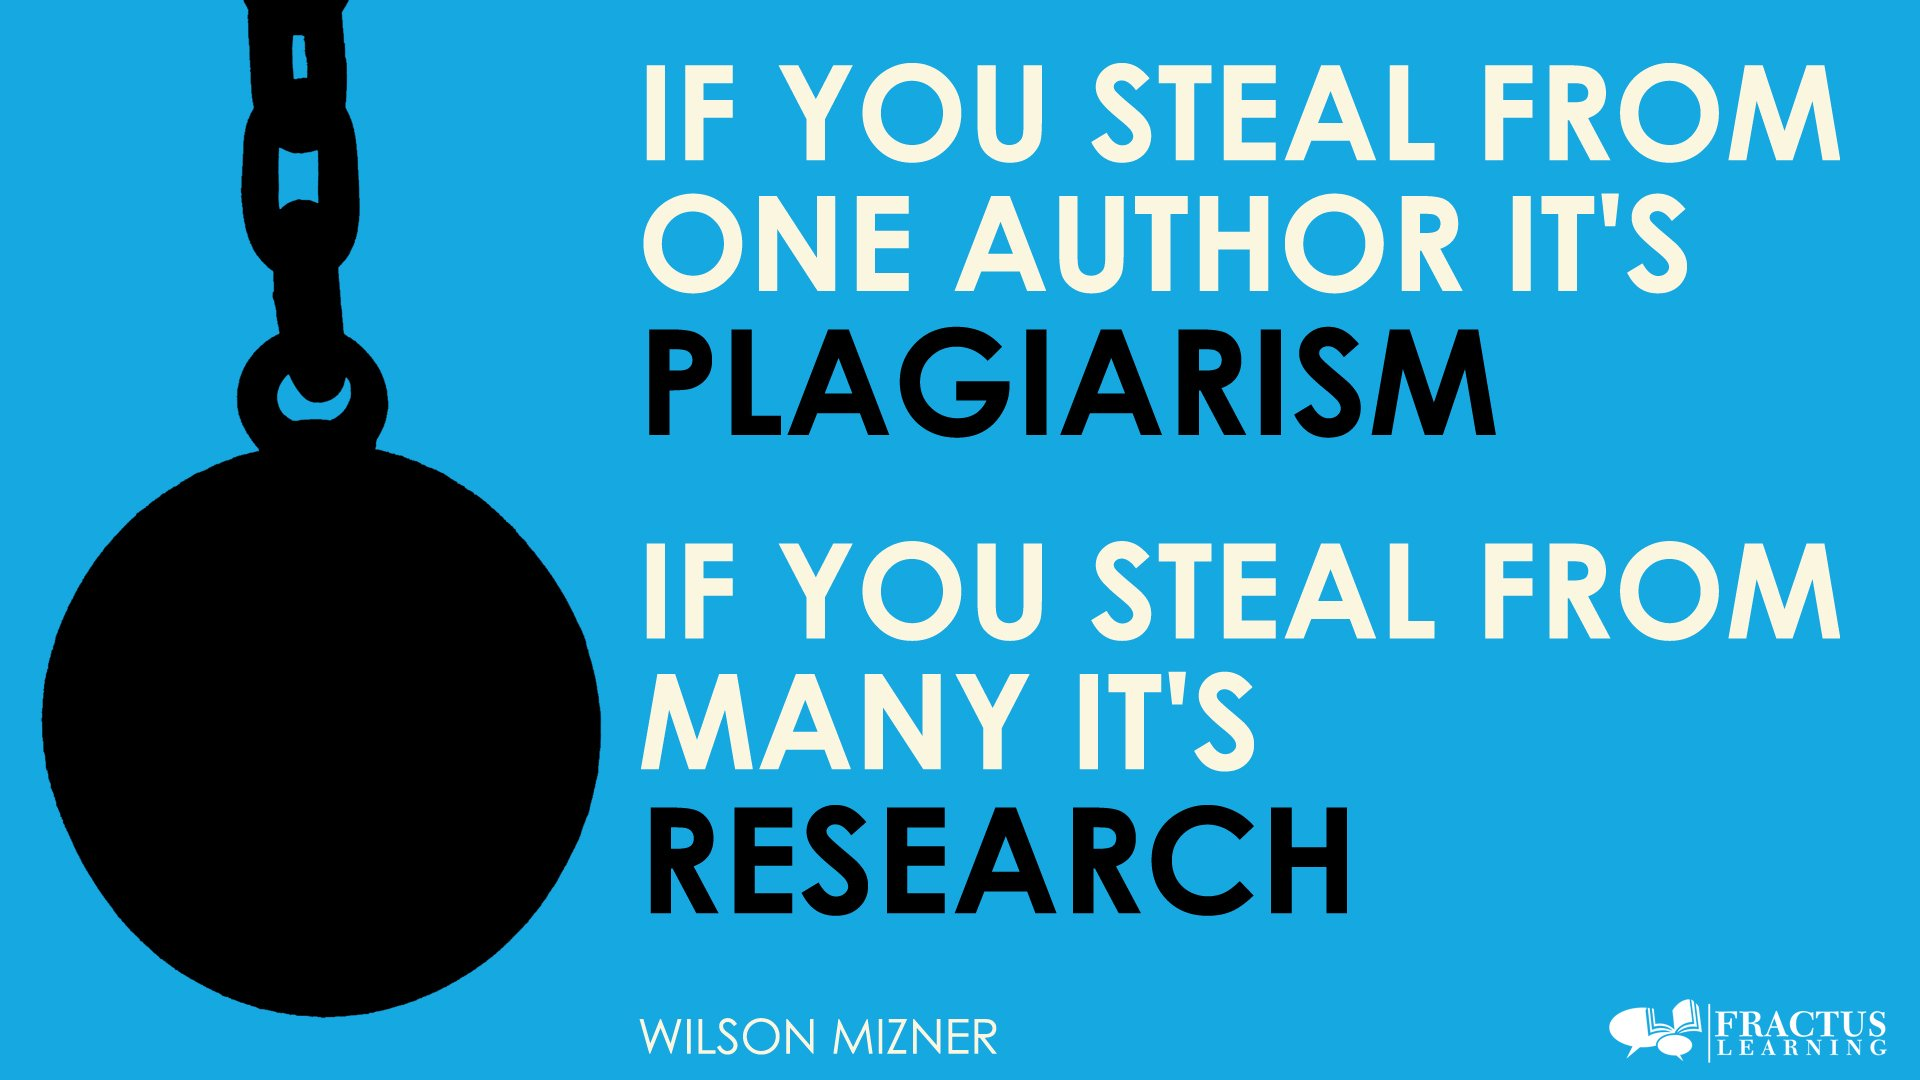 Funny Wallpaper With Quotes On Life Plagiarism Vs Research Wallpaper